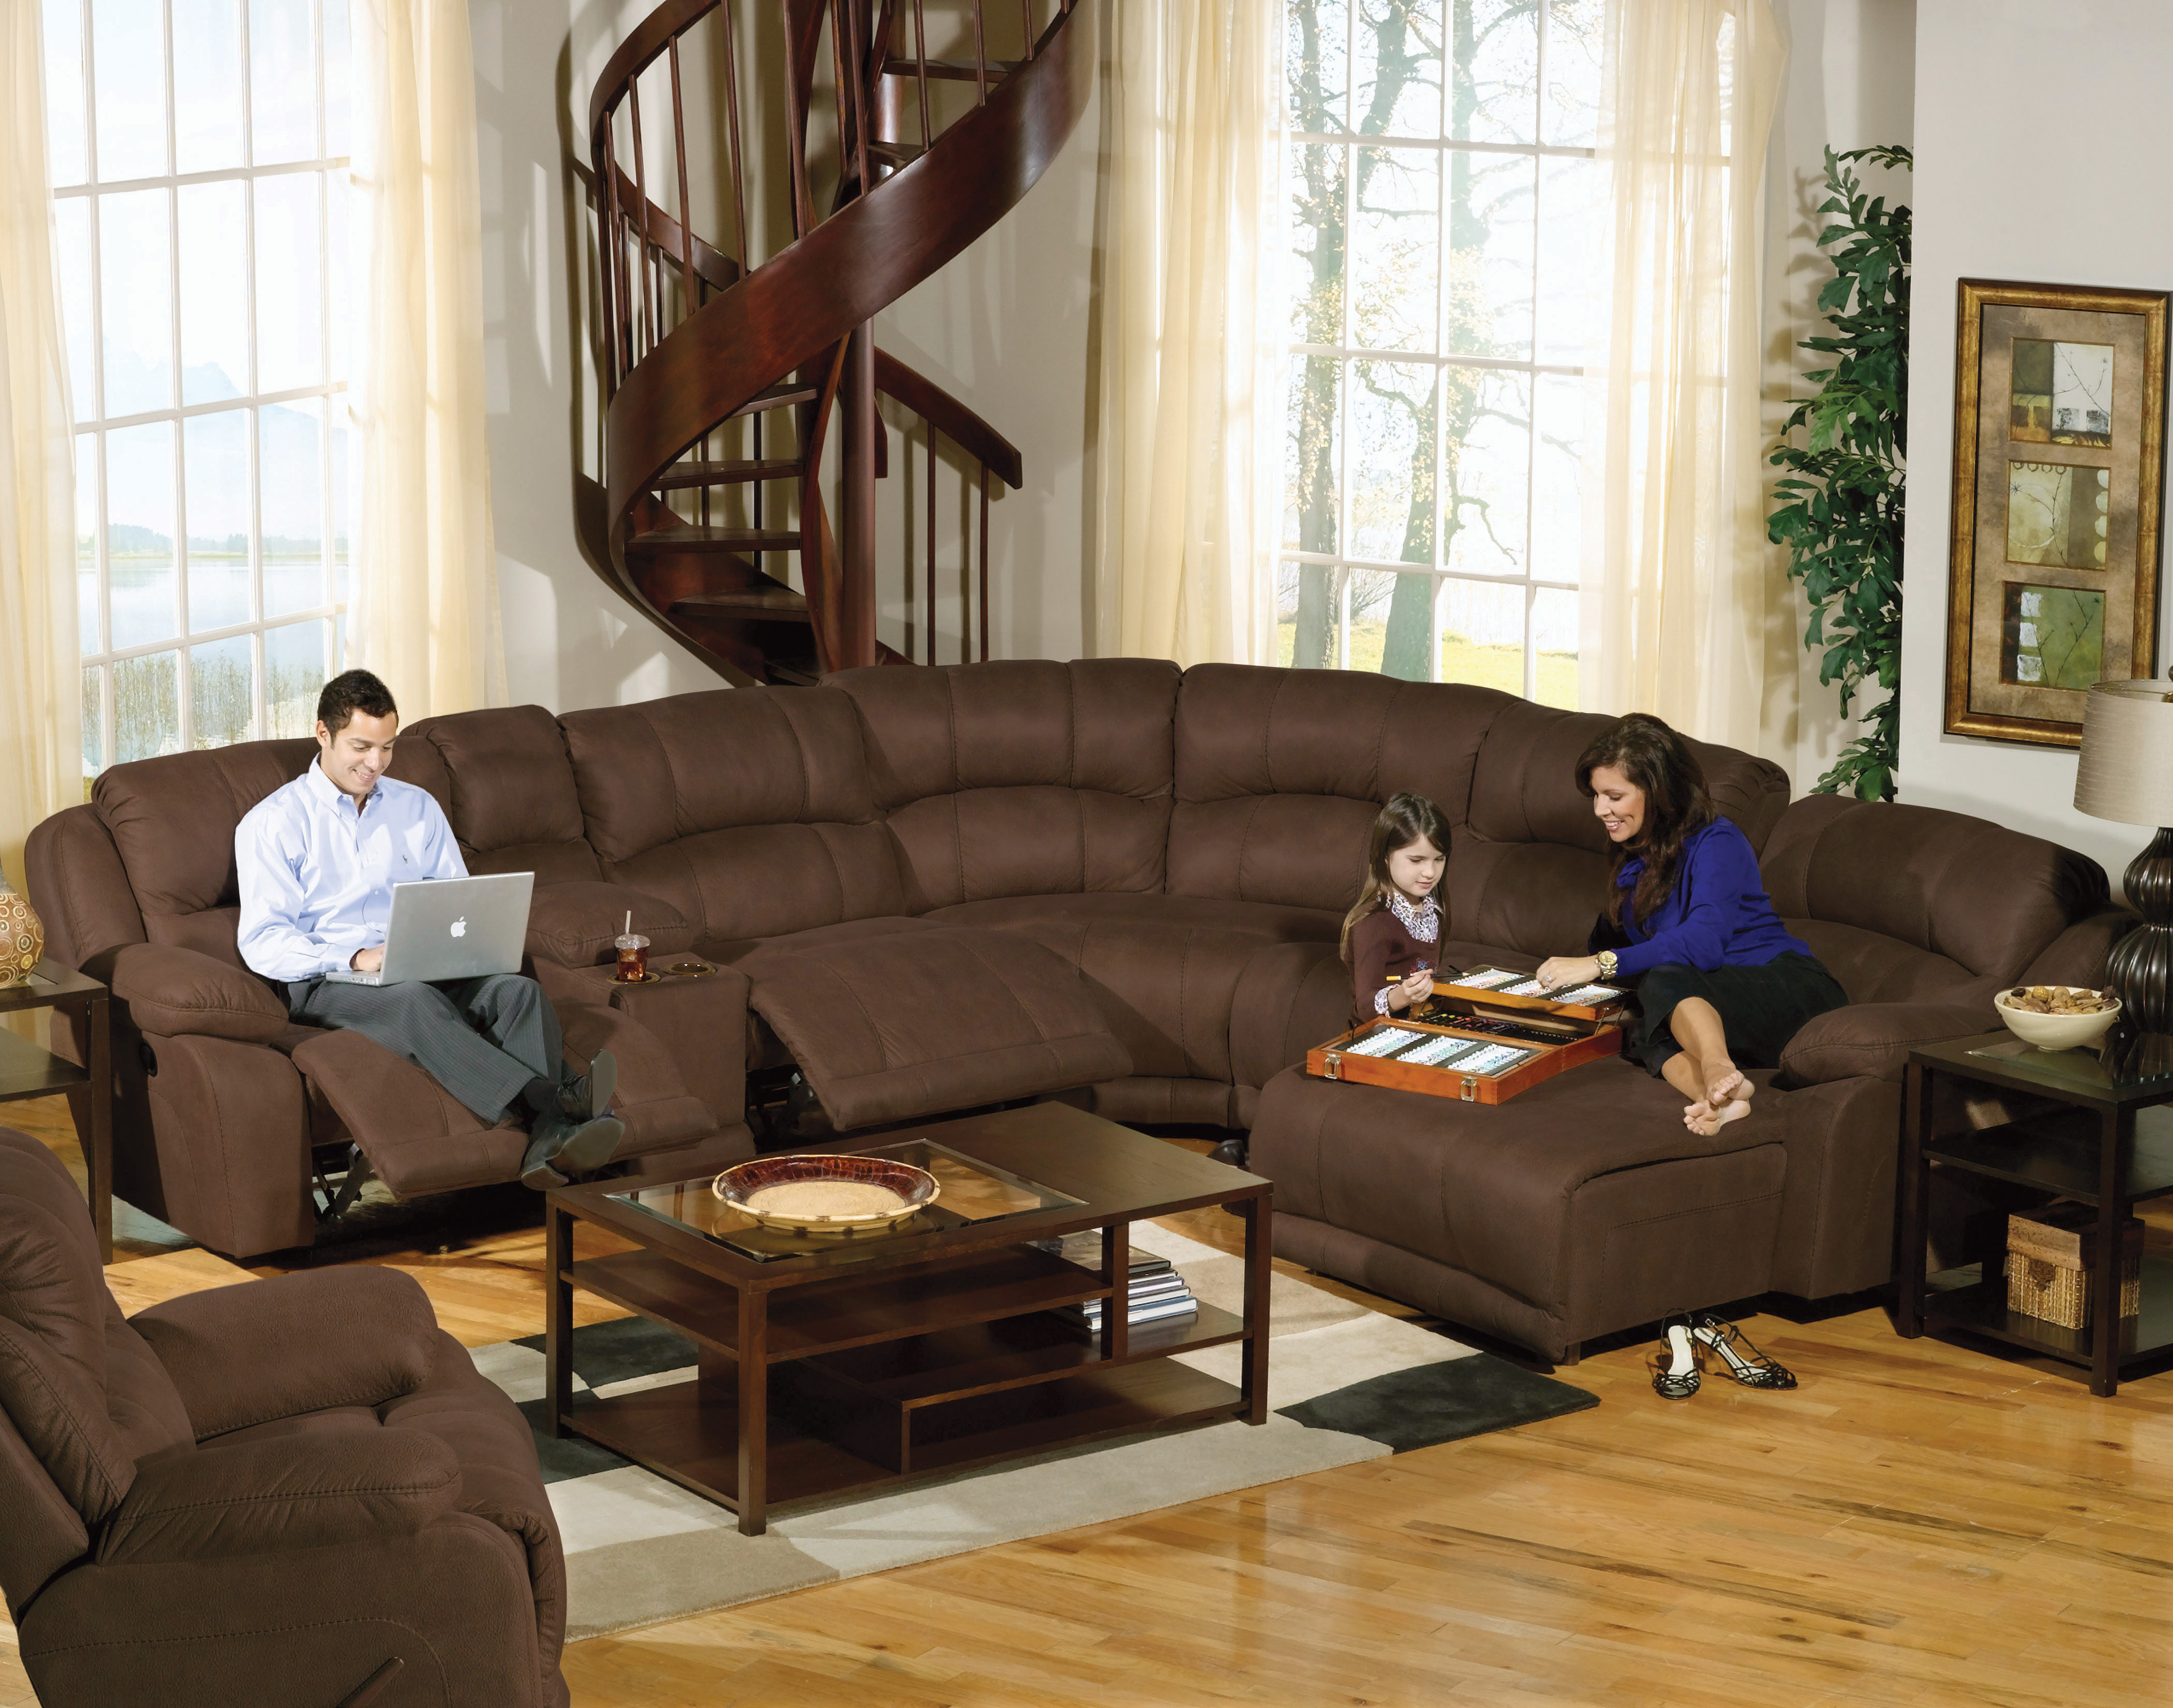 Large Sectional Sofas Perfect For Your Living Room & Extra Large Sectional Sofas With Recliners | Centerfieldbar.com islam-shia.org